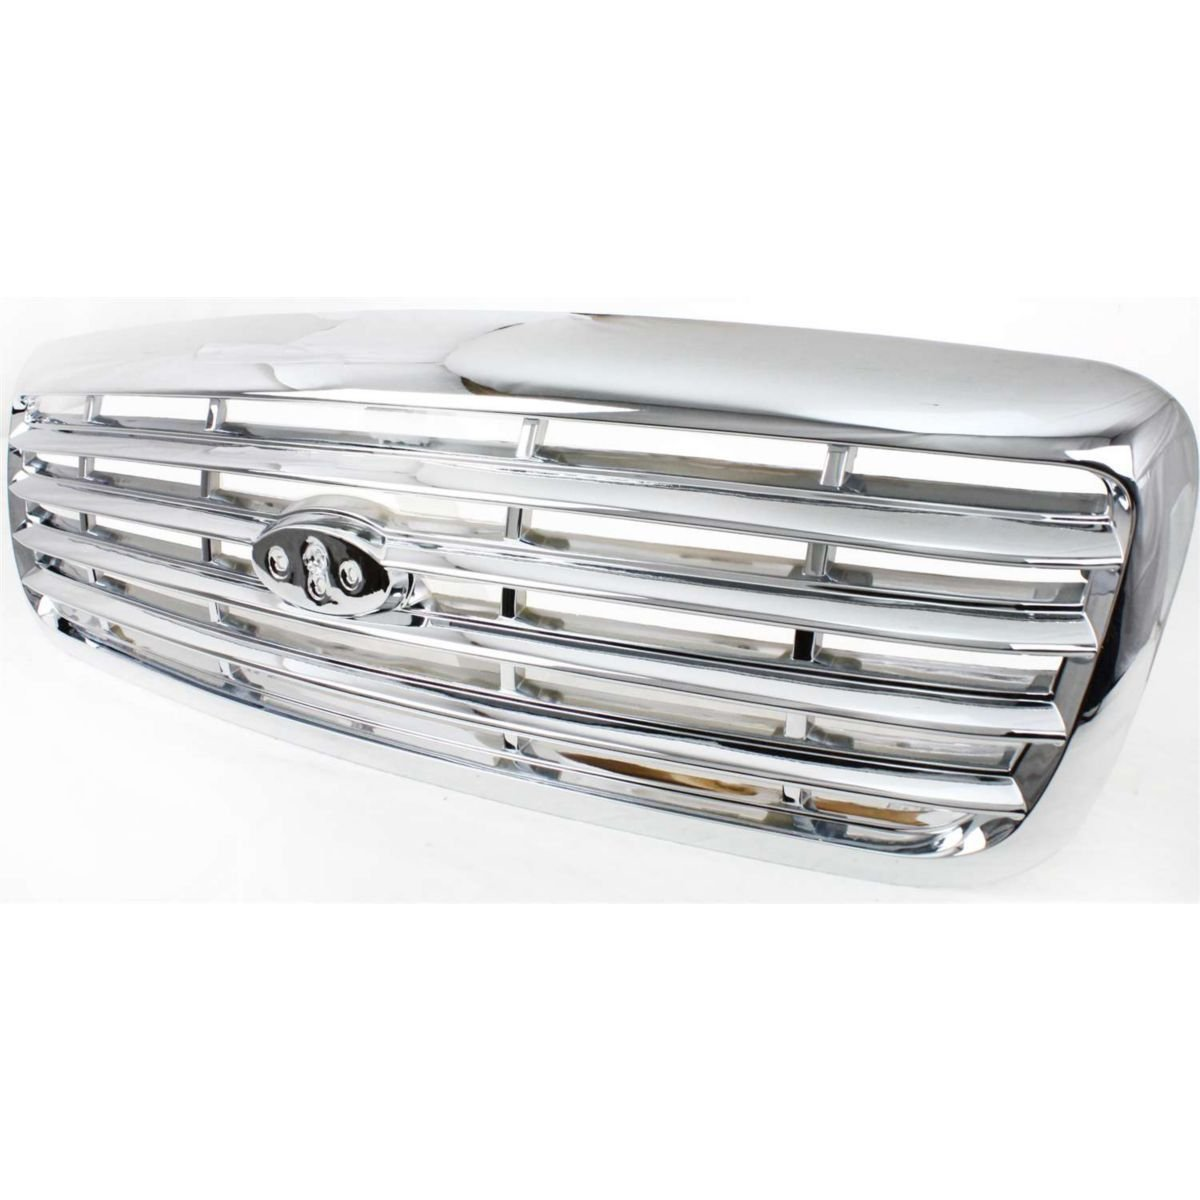 Diften 102-A0040-X01 - New Grille Assembly Grill Chrome Ford Crown Victoria 2011 2010 2009 99 FO1200346